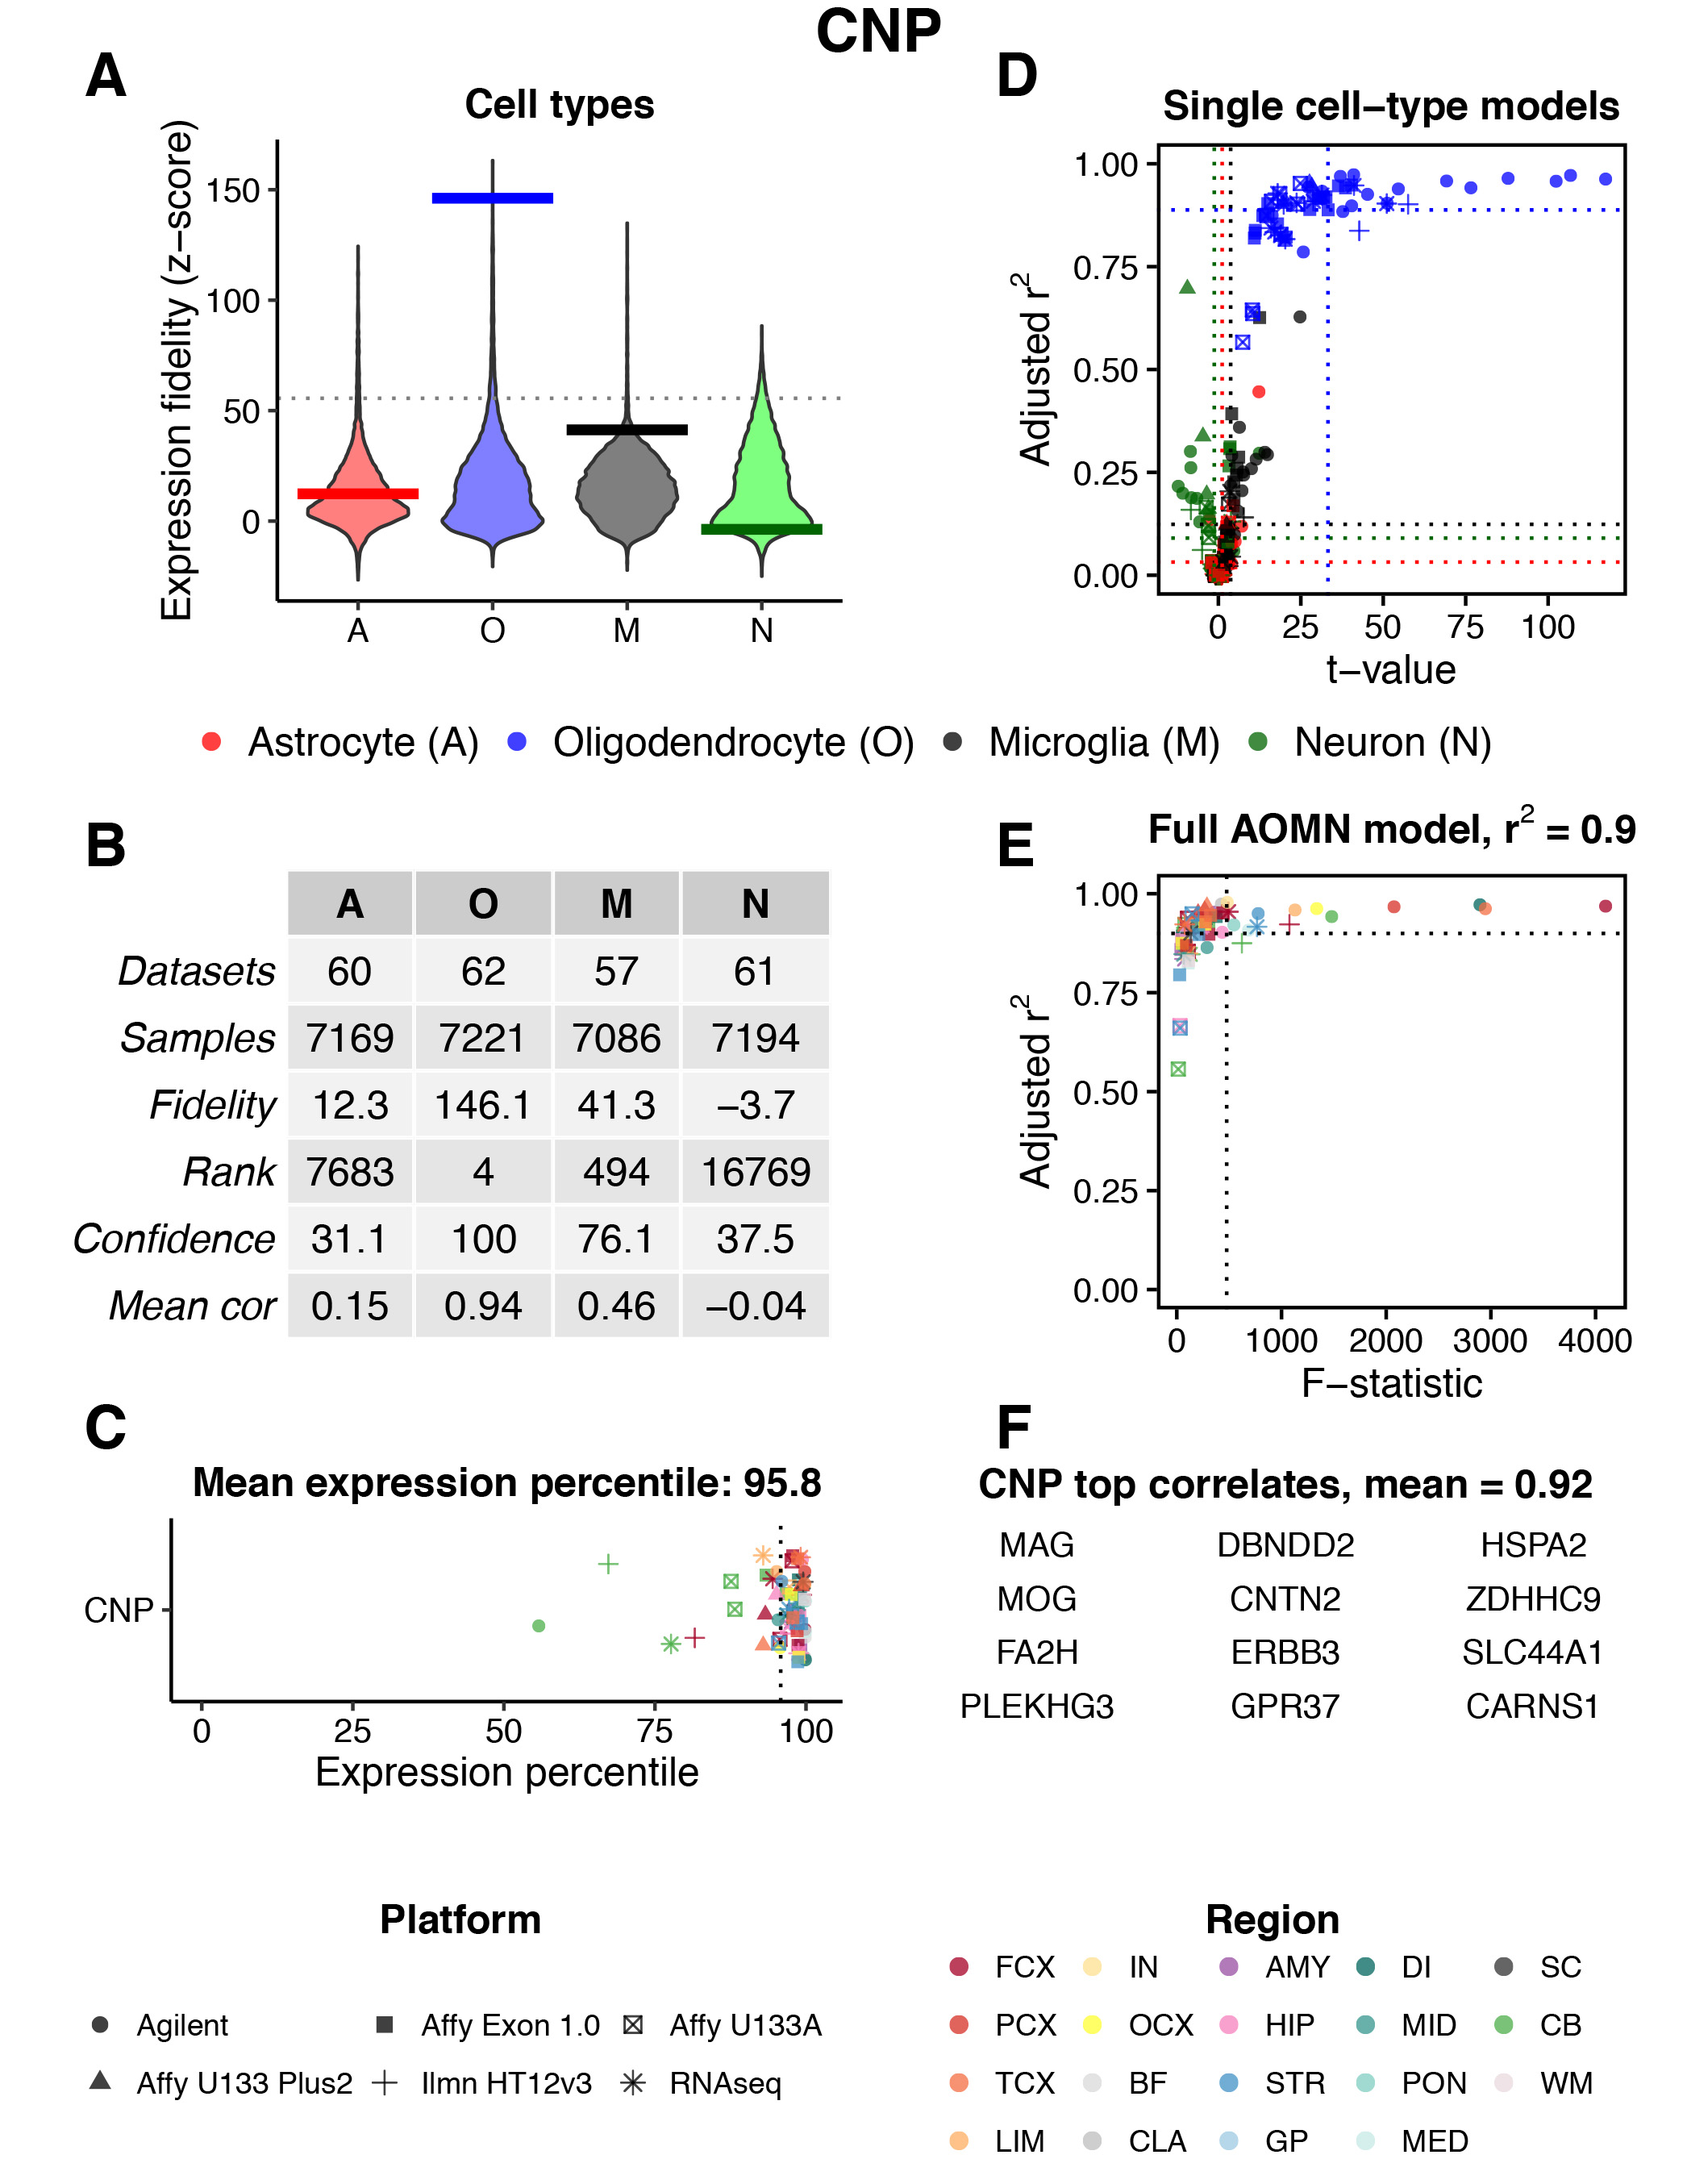 Fig. 3 | Gene search example. Results are shown for CNS region = 'All' and Gene = 'CNP'. The meaning of each panel is described below.